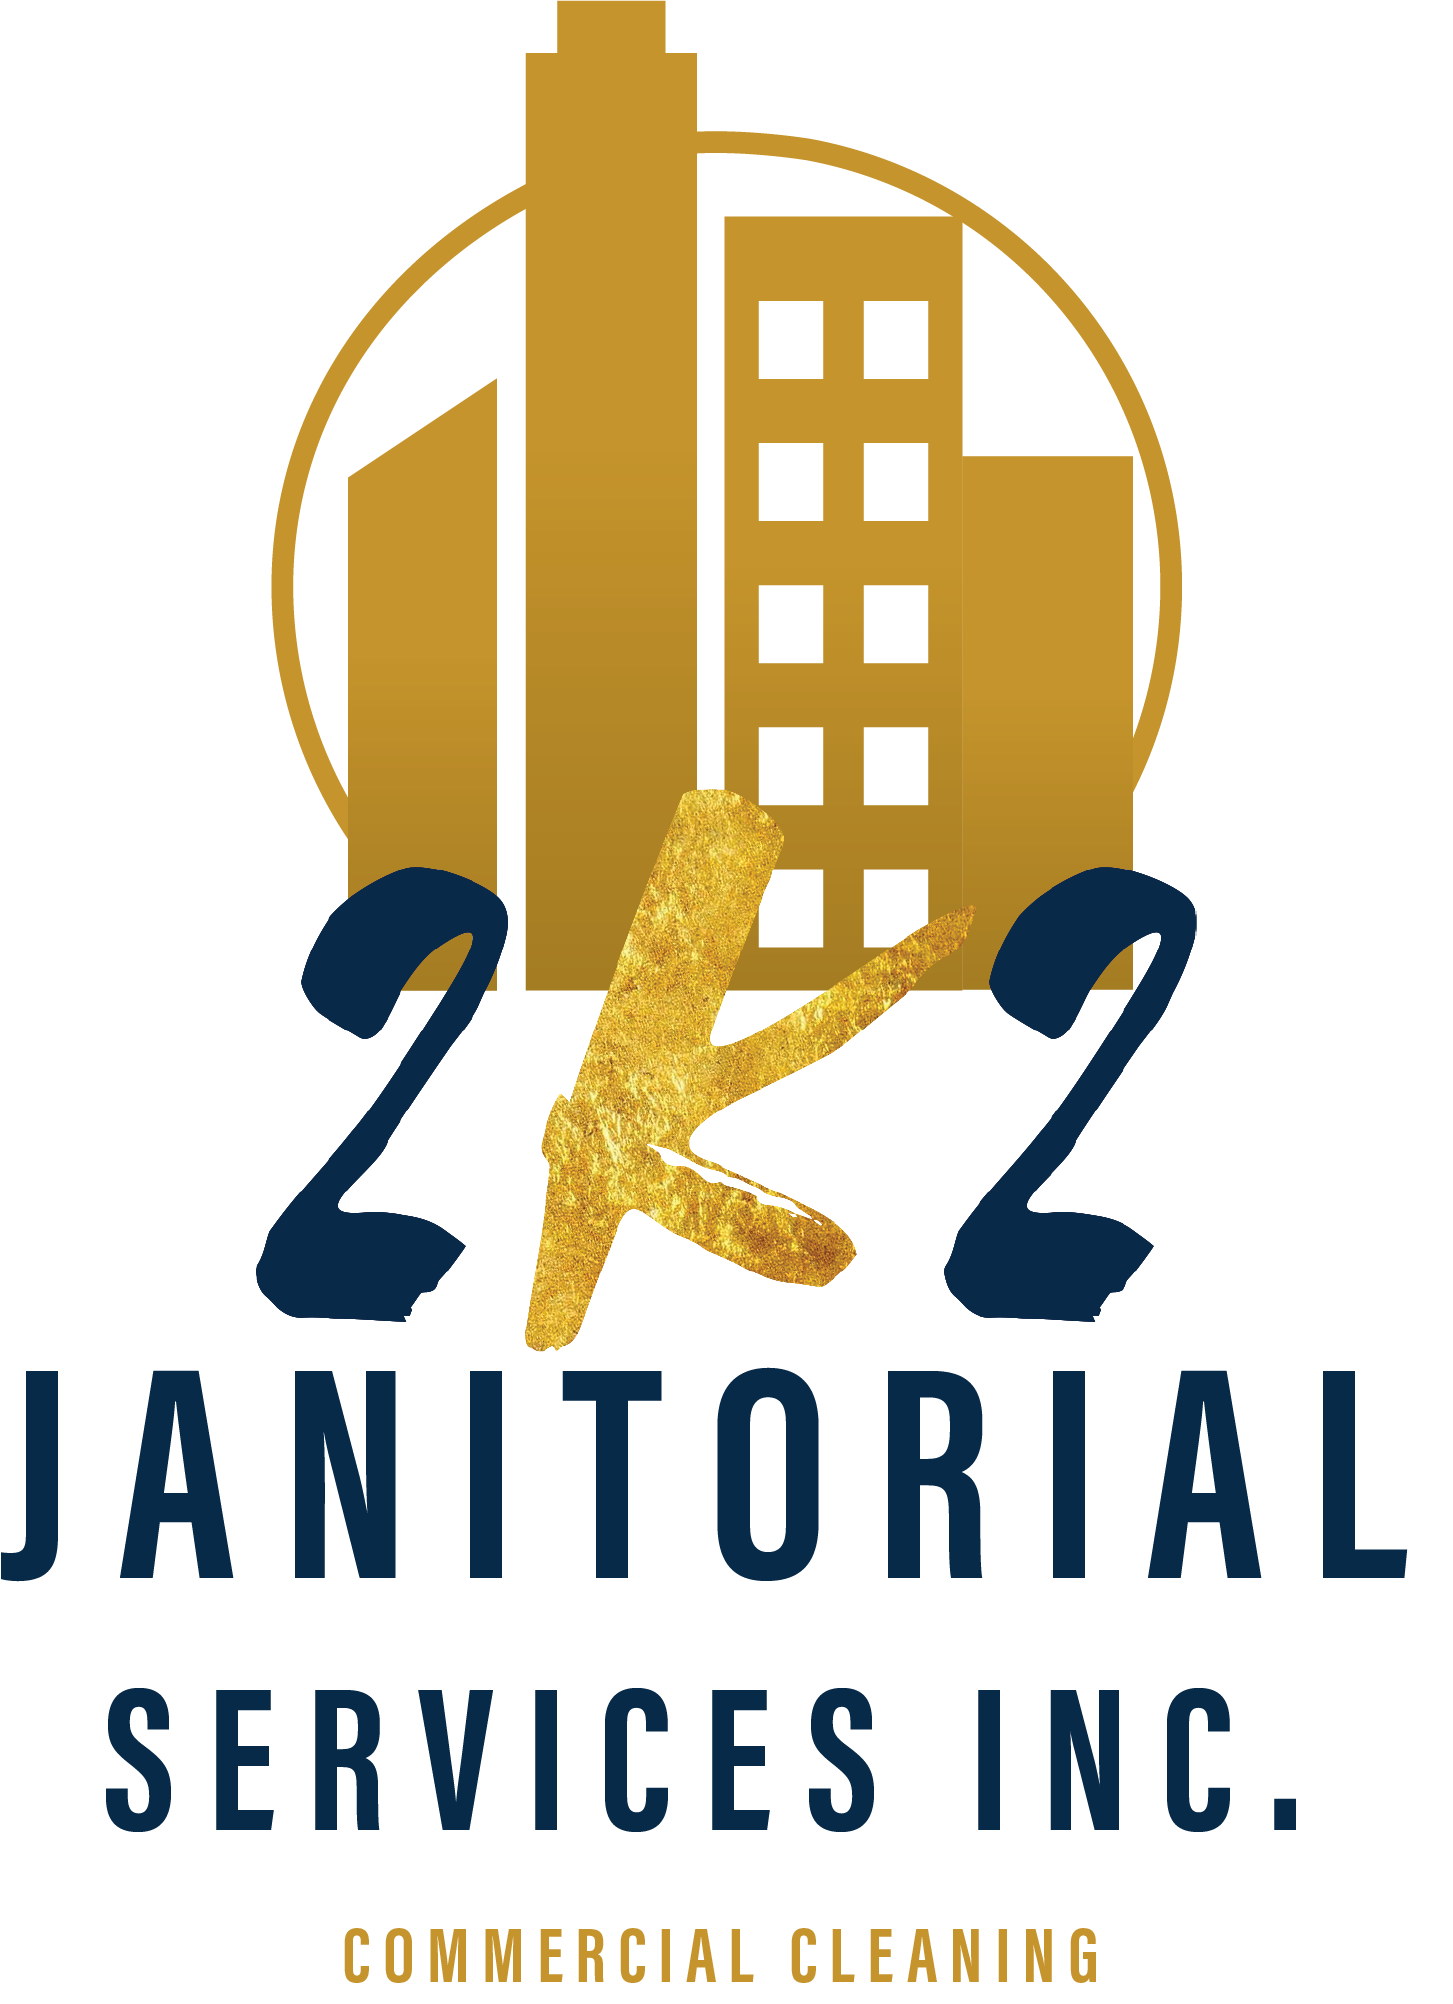 2K2 Janitorial Services